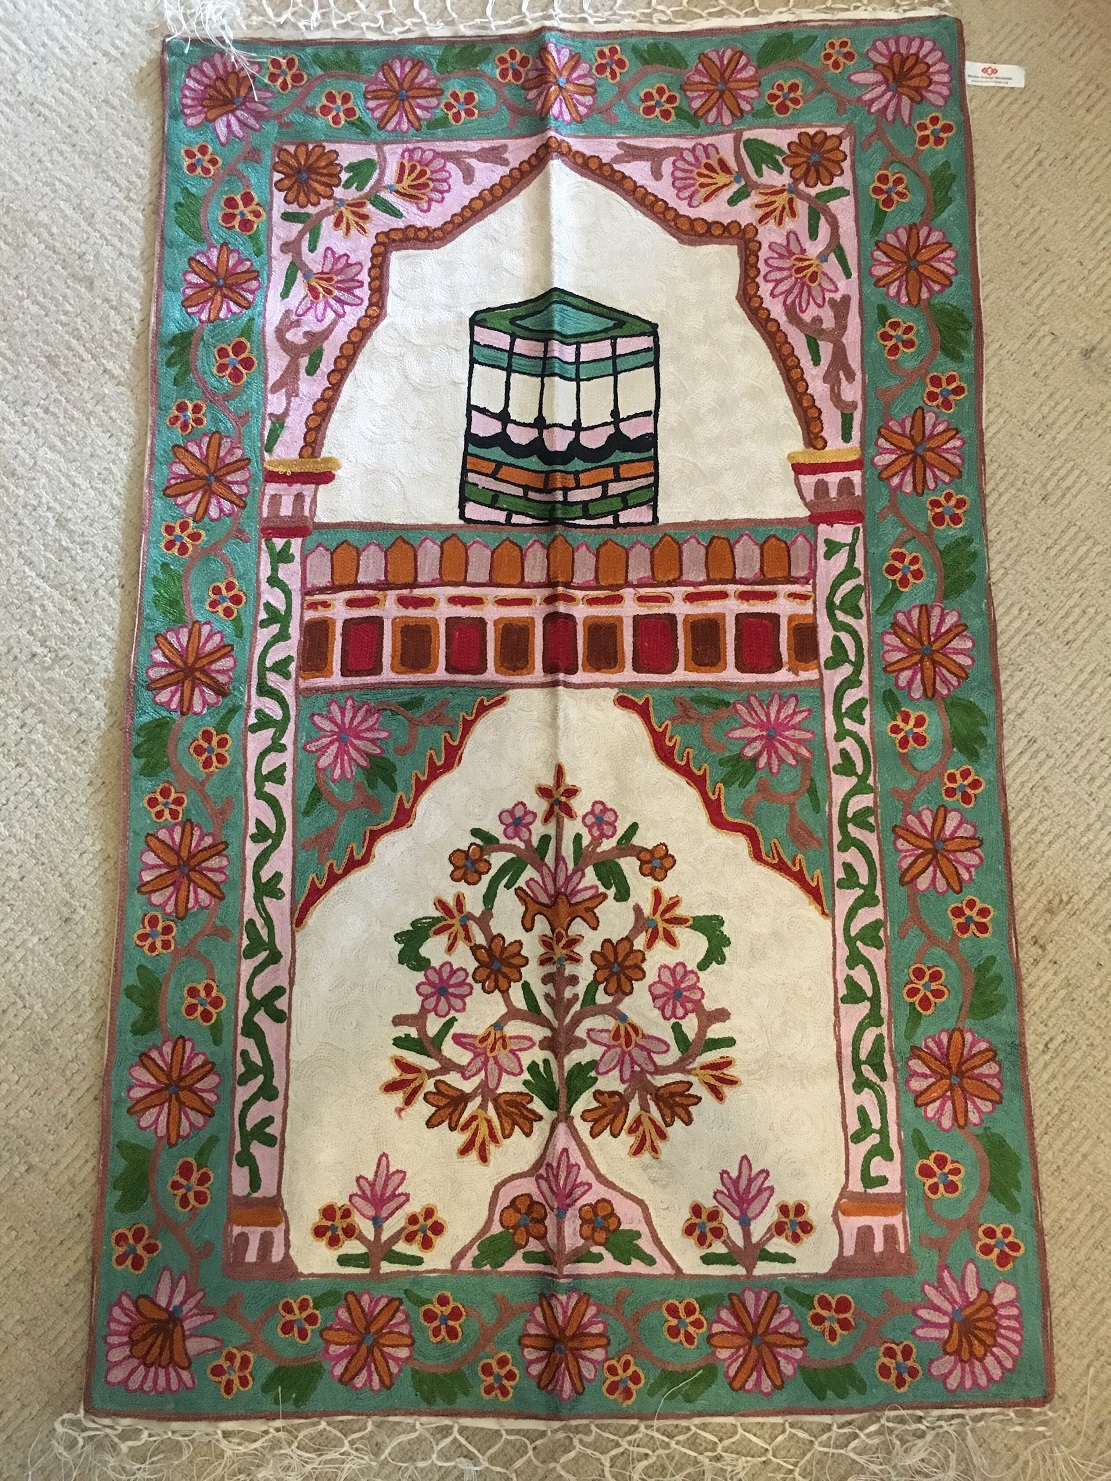 The Muniza Handmade Prayer Mat From Kashmir The Prayer